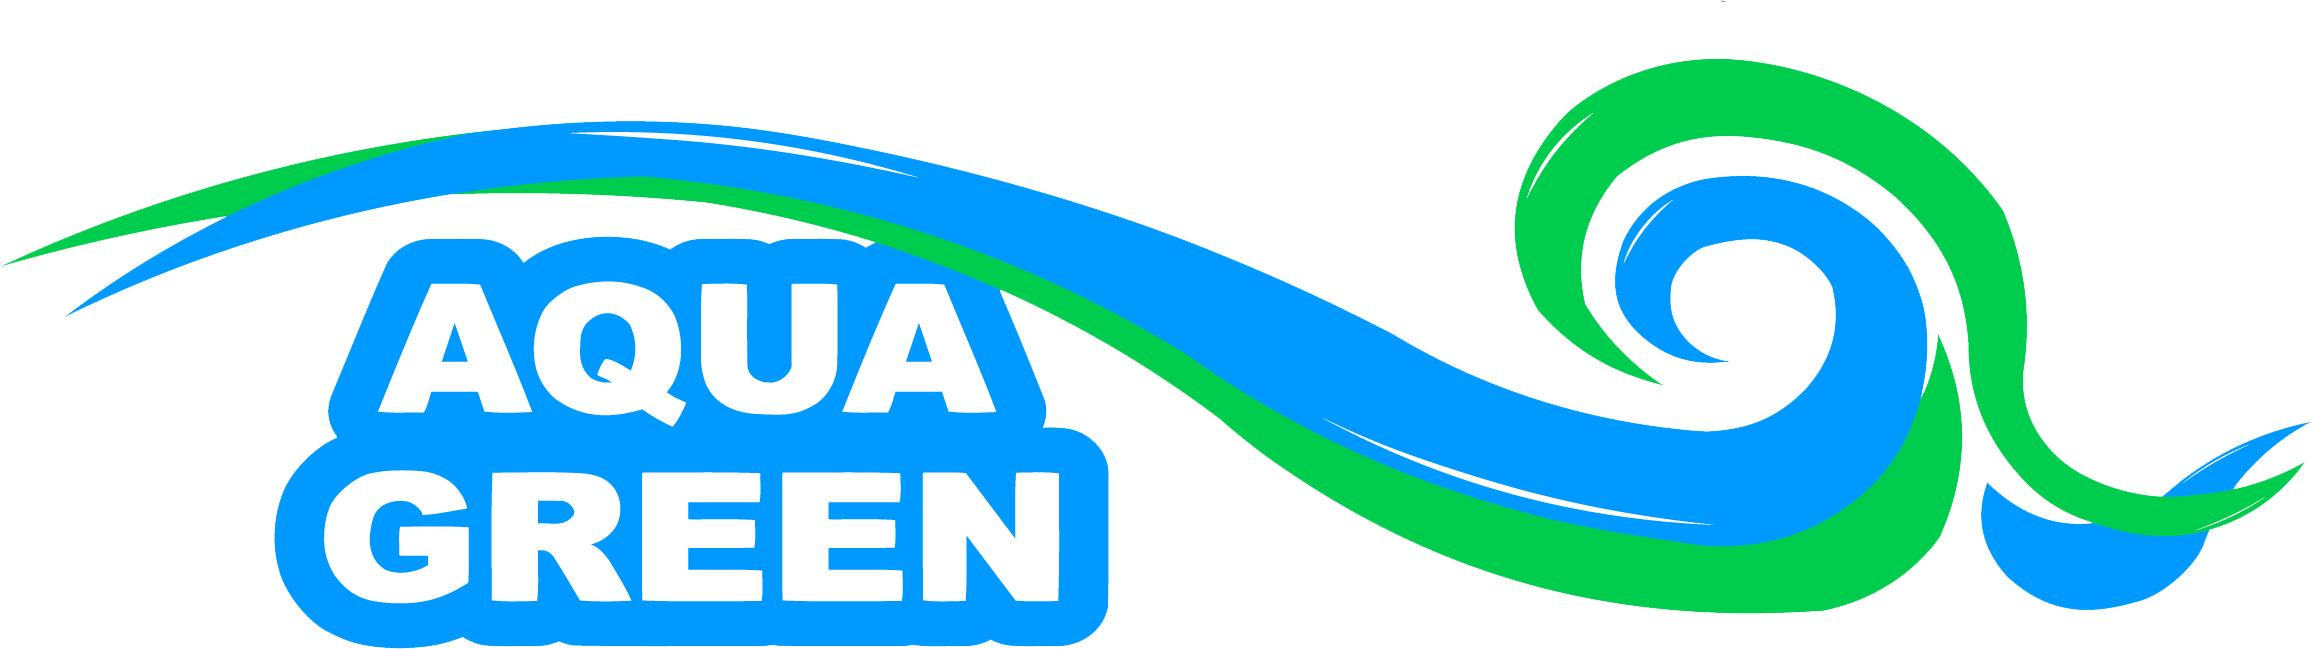 aquagreen logo_1_18